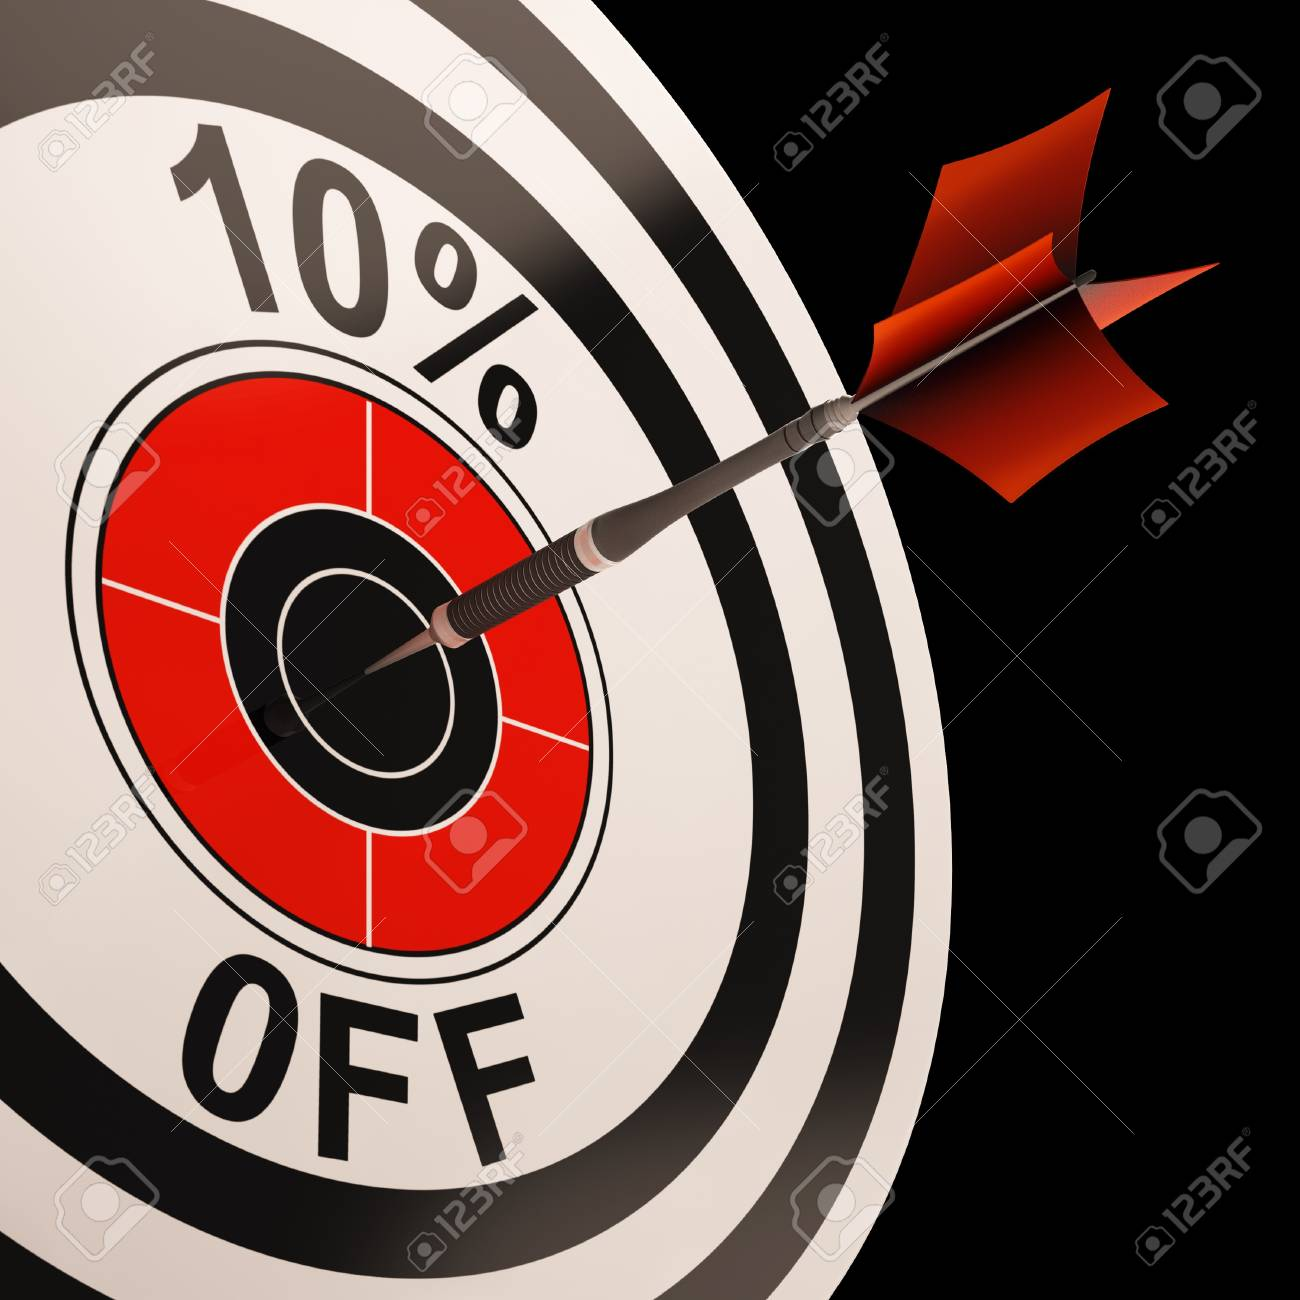 10 Percent Off Showing Percentage Reduction Special Offer Stock Photo - 18271140